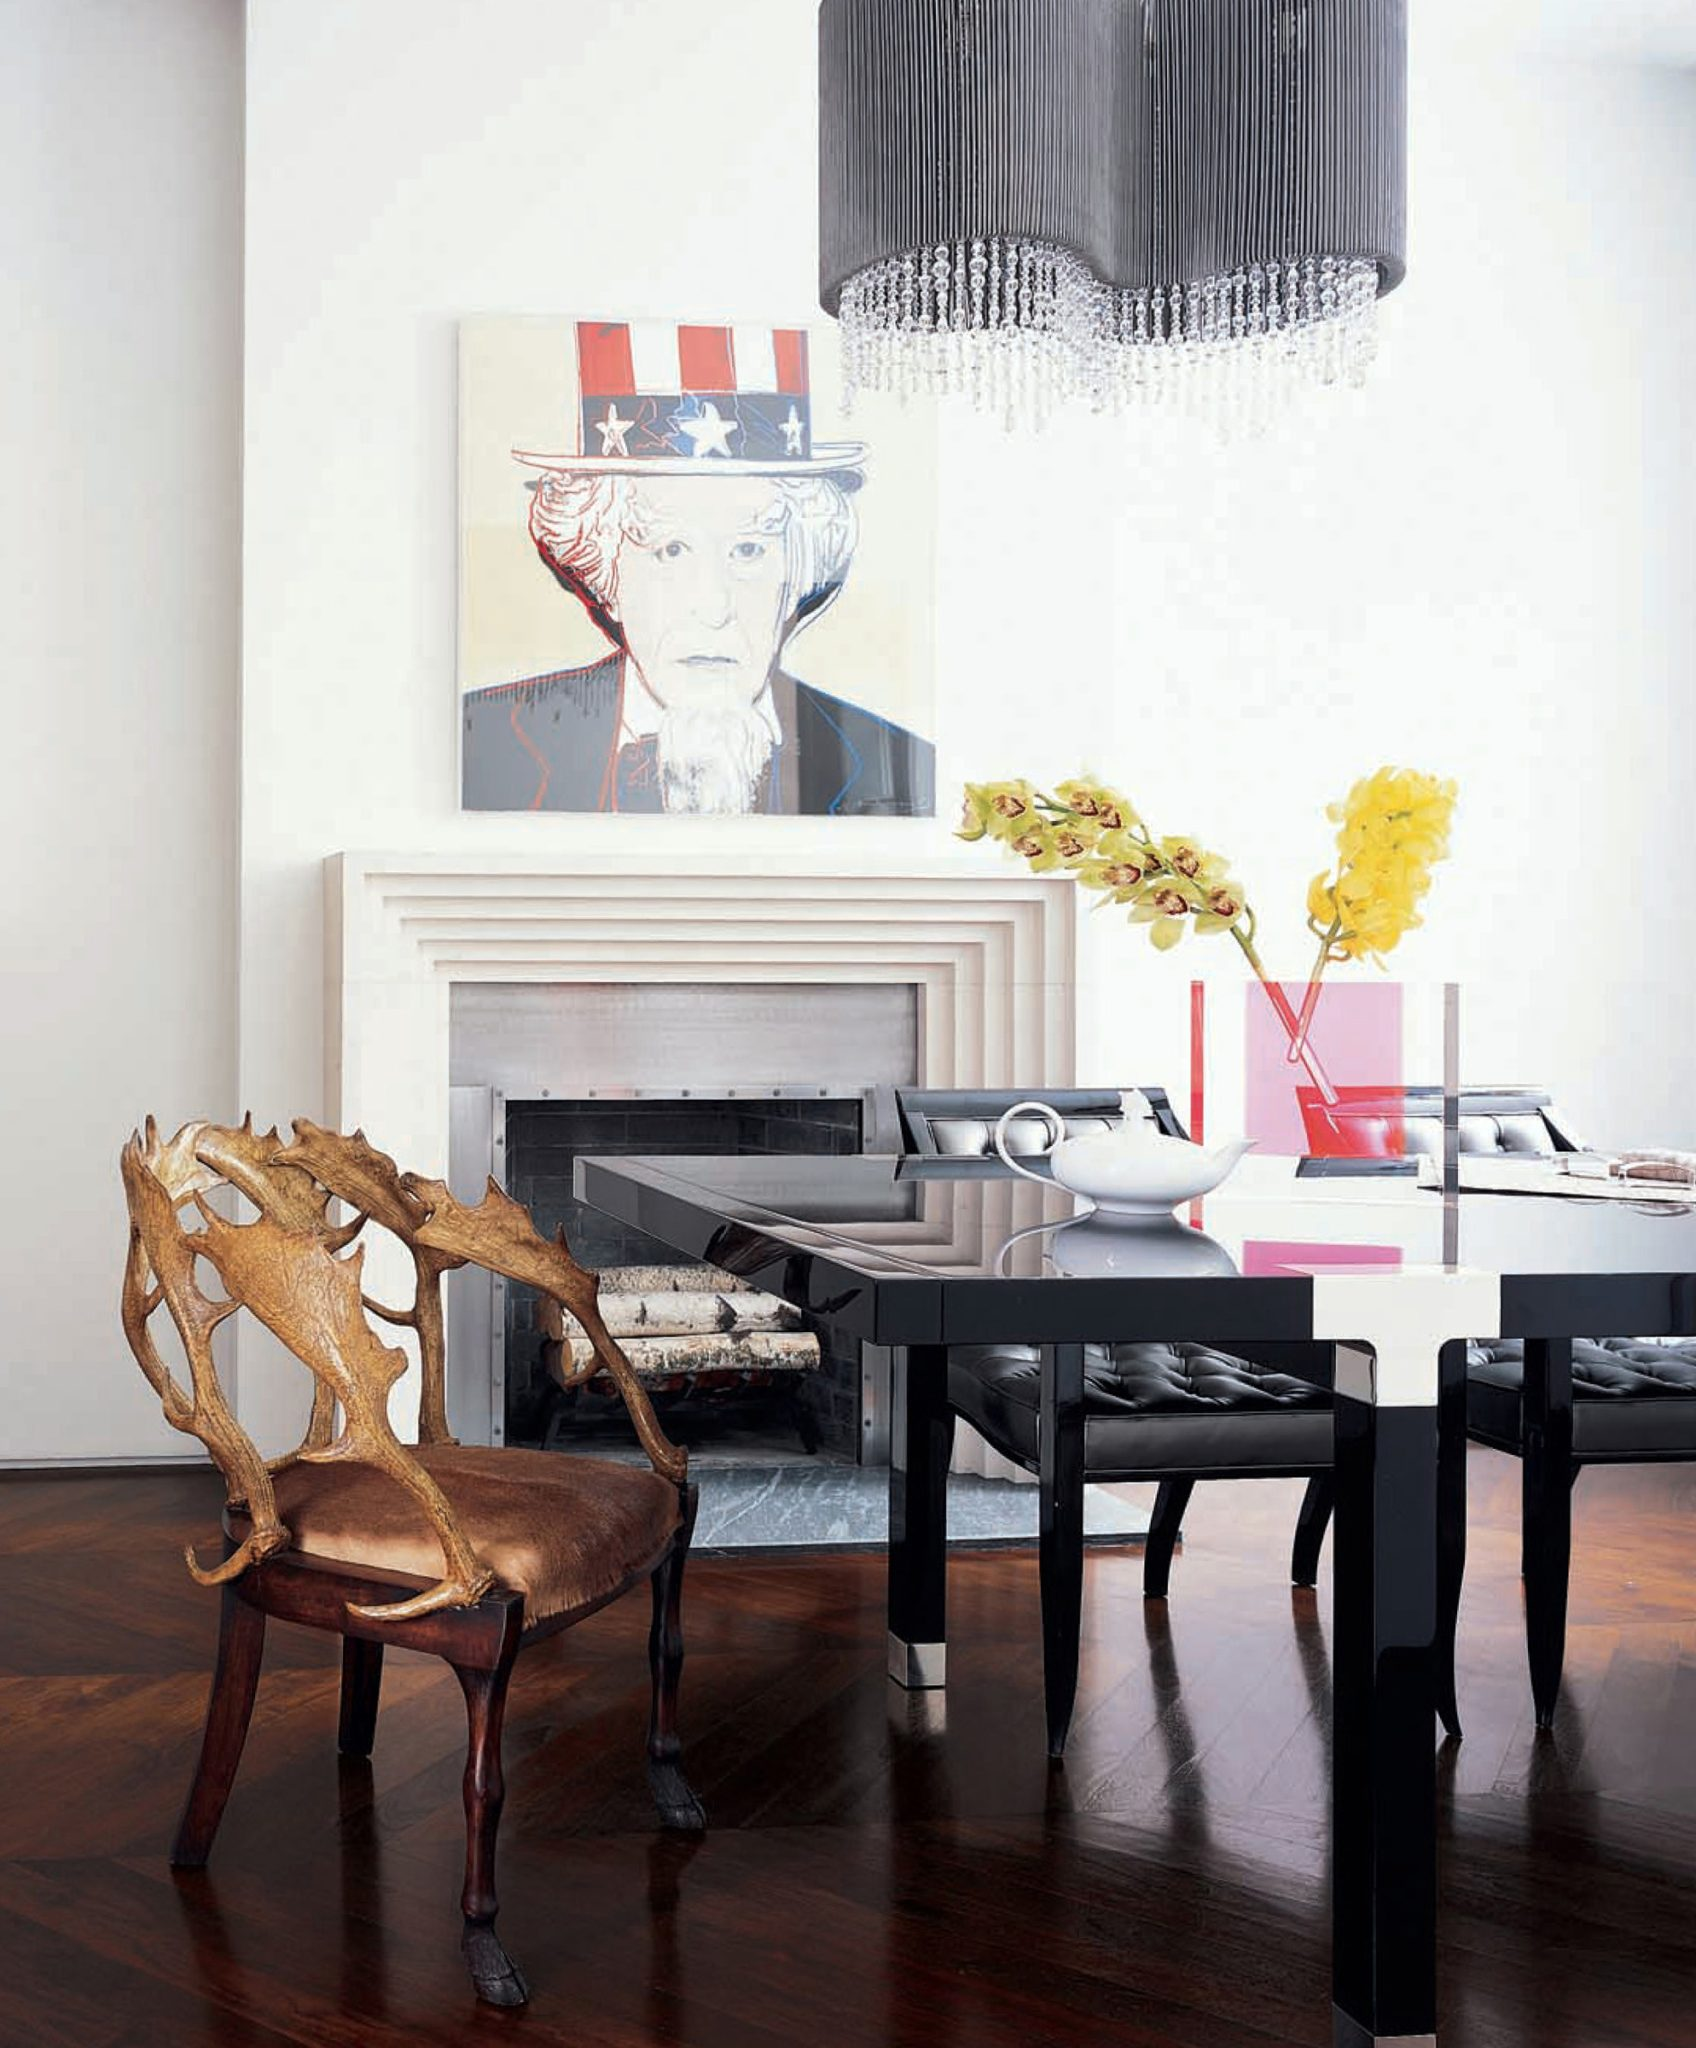 An Andy Warhol Uncle Sam overlooks the dining room, with its rustic faux-antler chair and lacquered Rossini table (from Armani/Casa); the chandelier is by Dominique Perrault from Sawaya & Moroni. by Axis Mundi